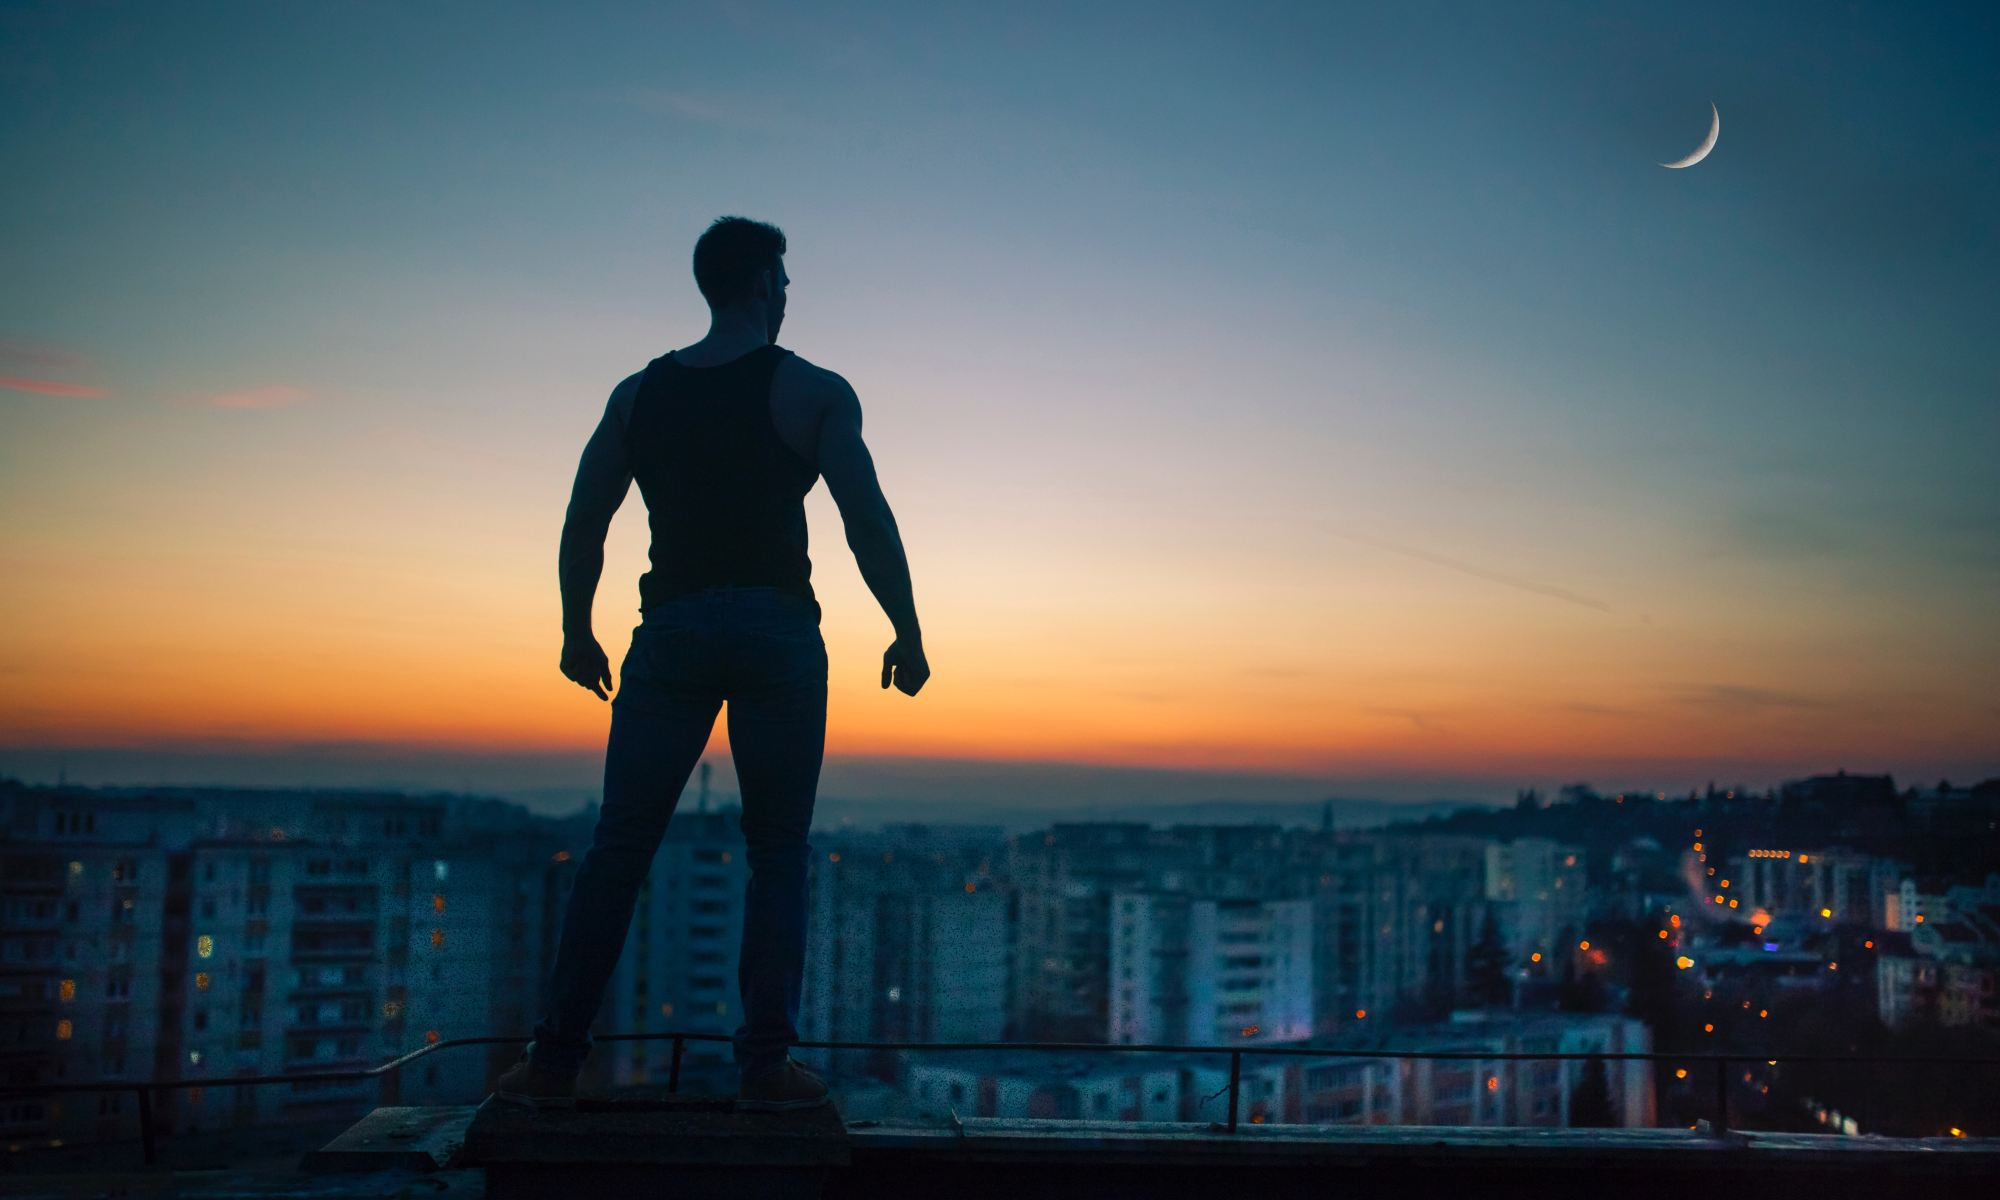 Silhouette photography of man standing on roof of building demonstrating persistence